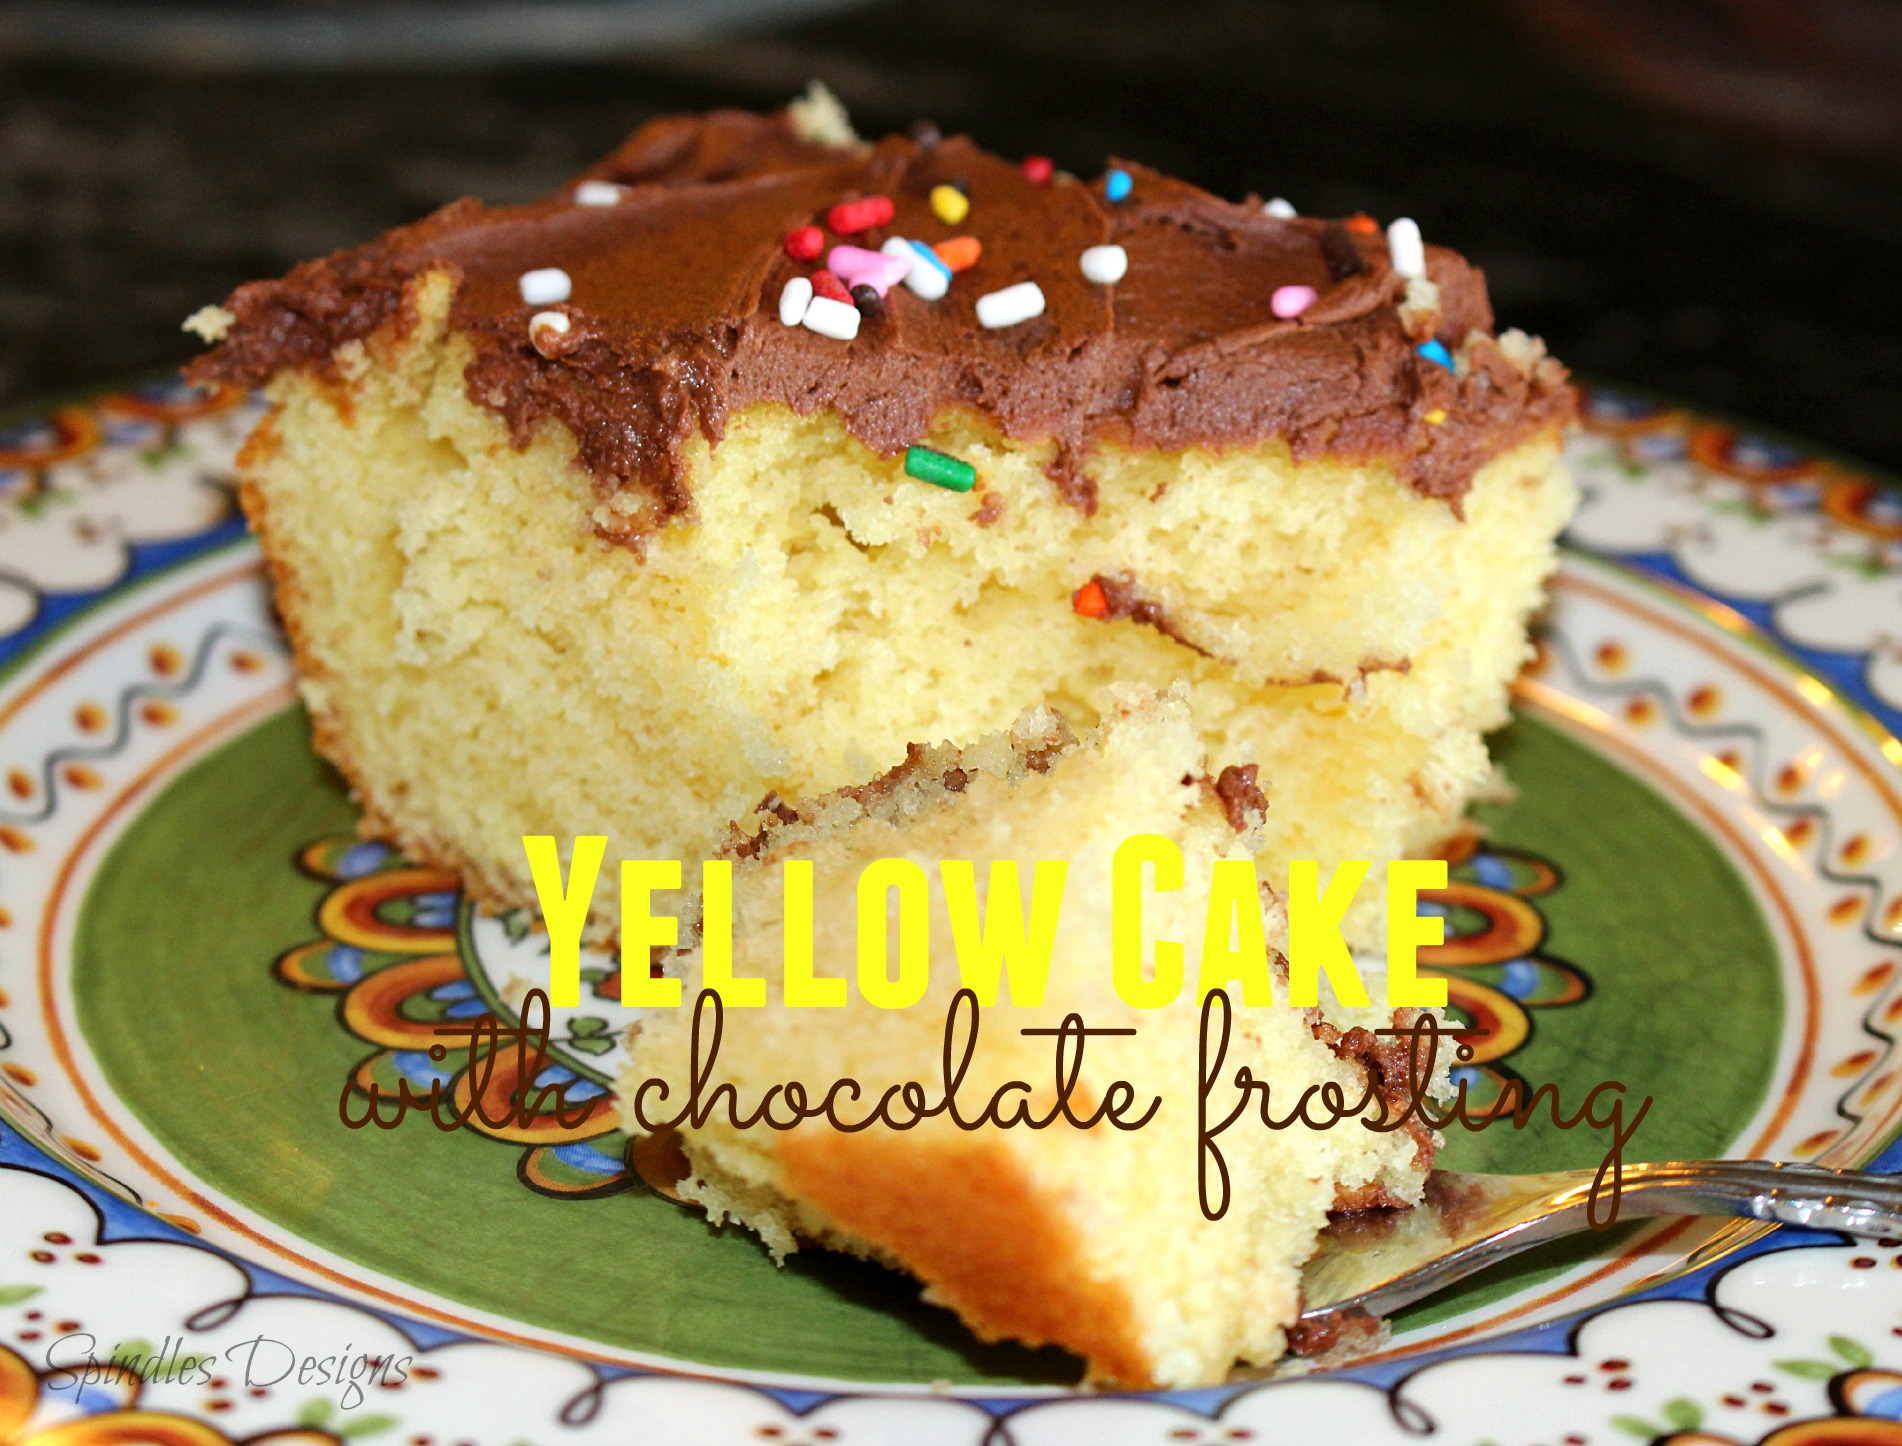 Yellow Cake with Chocolate Frosting - Spindles Designs by Mary and ...